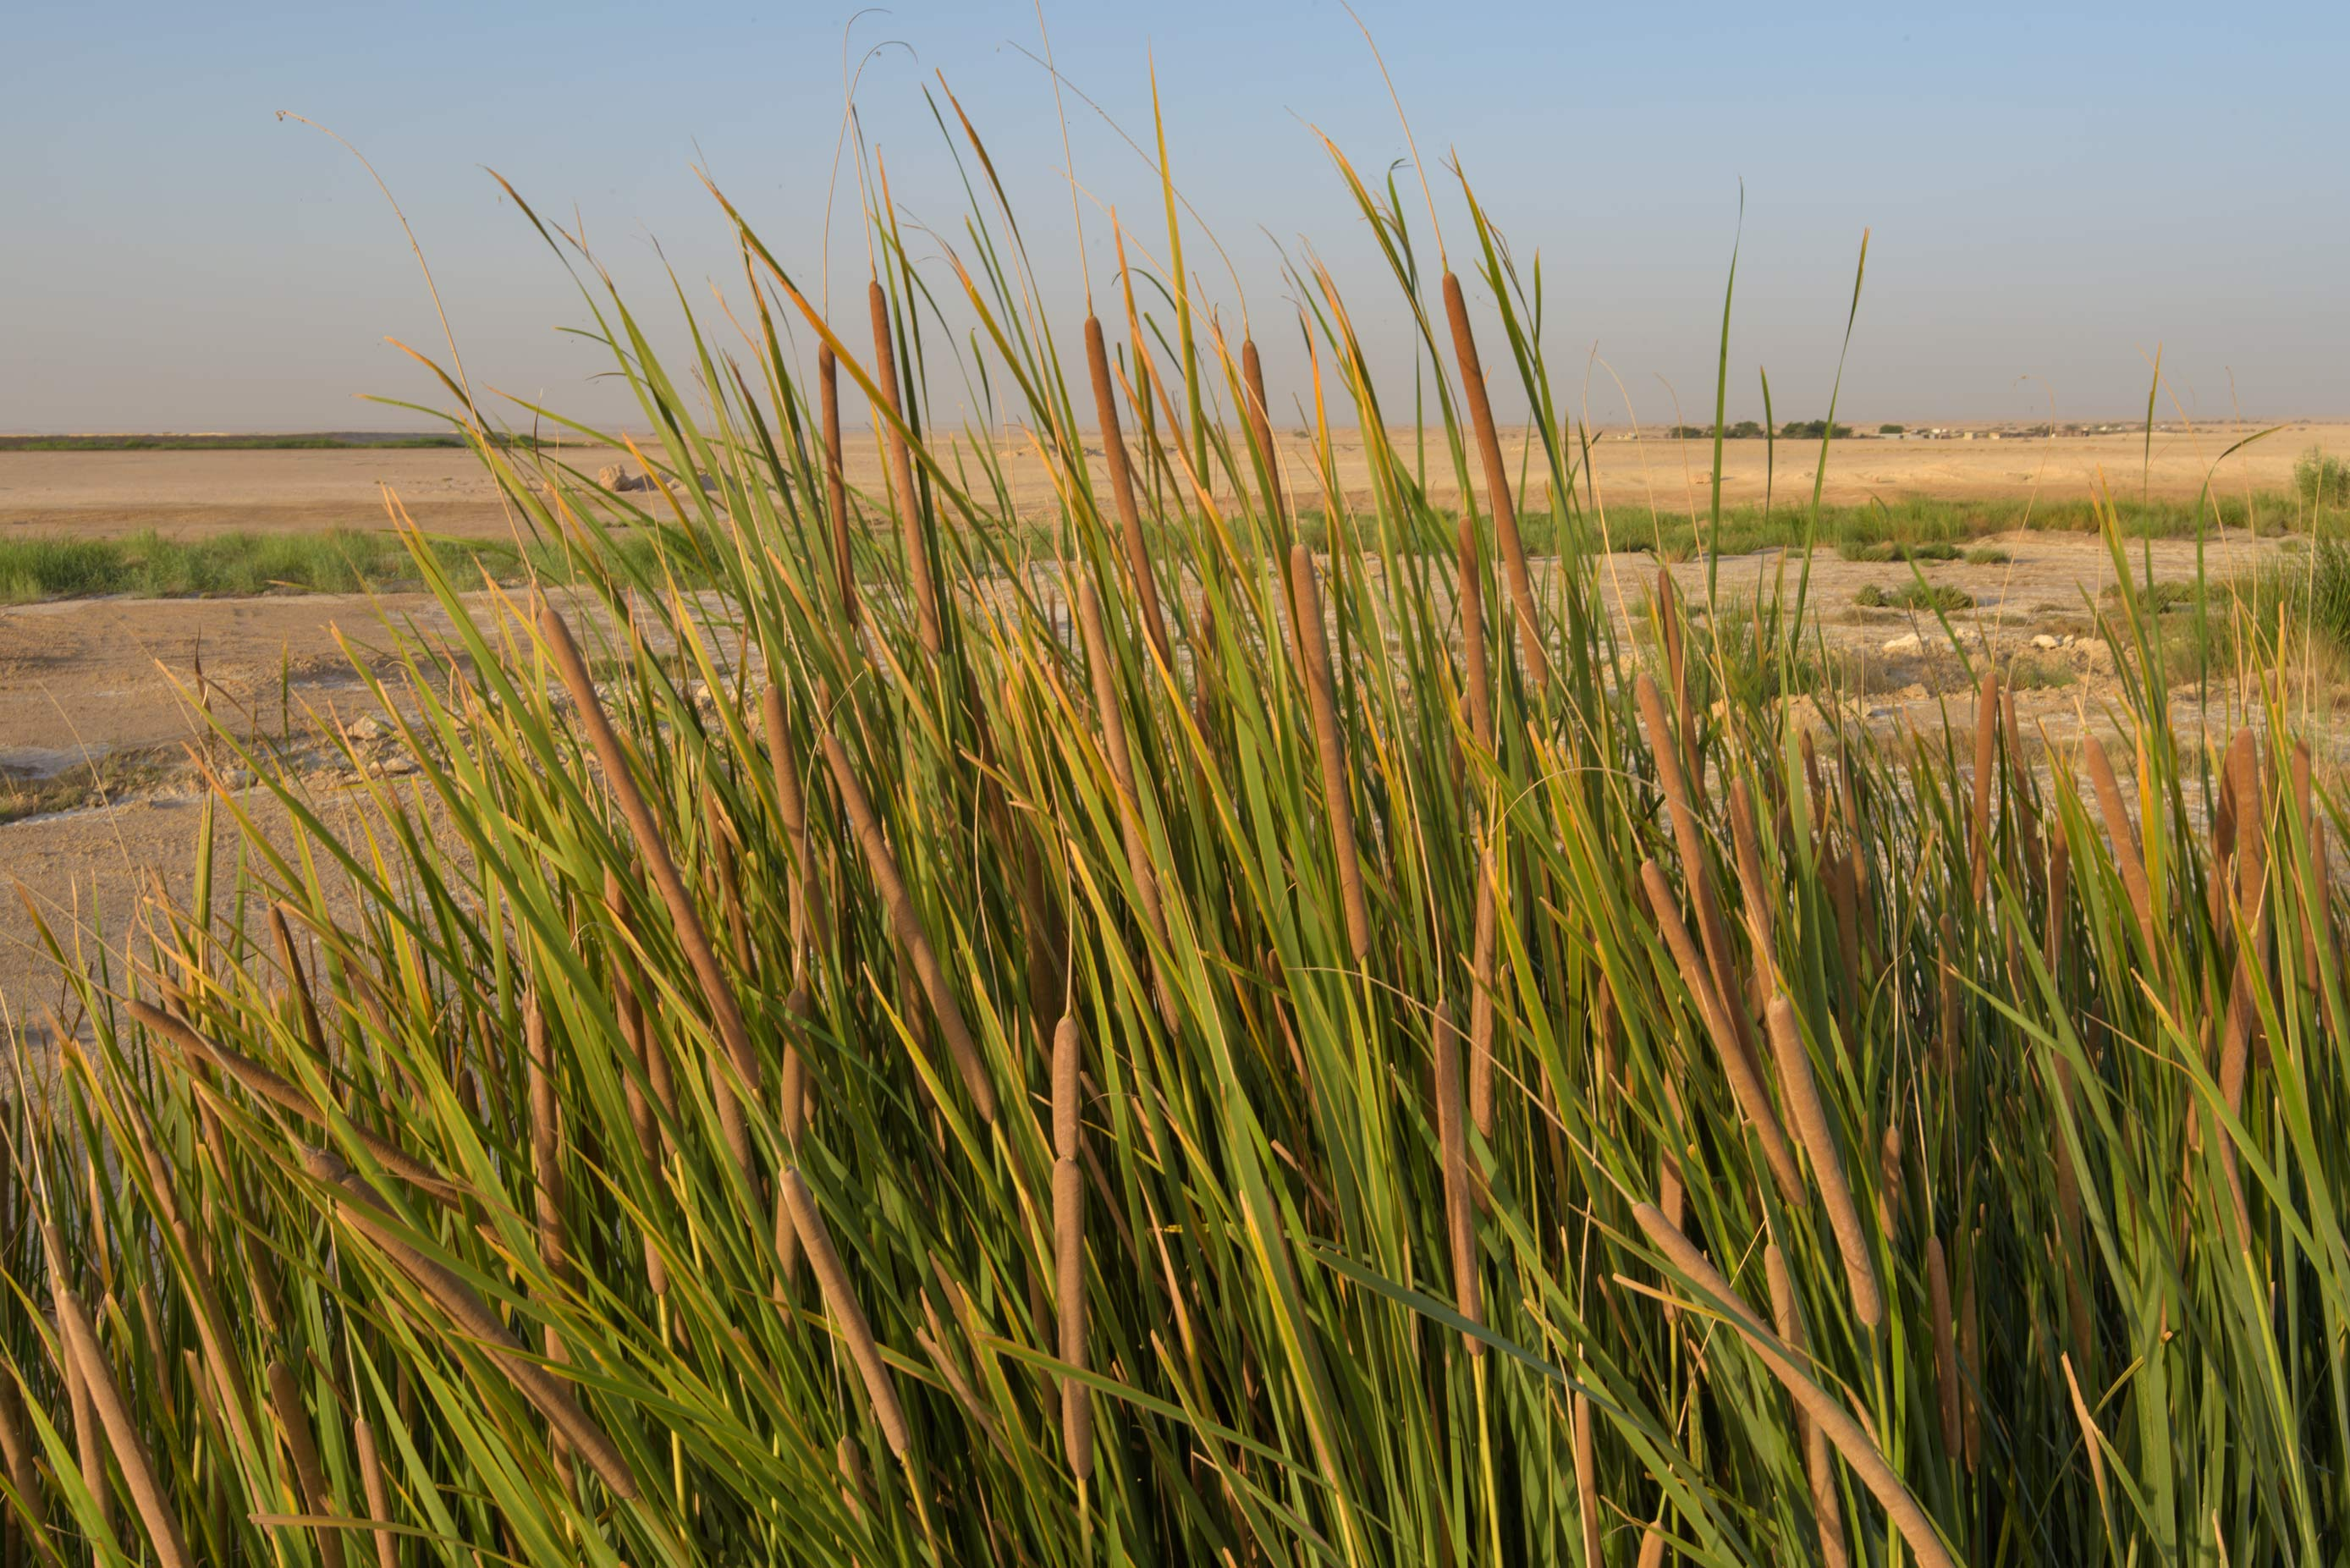 Flowering spikes of Southern cattail (Typha...near Irkhaya (Irkaya) Farms. Qatar